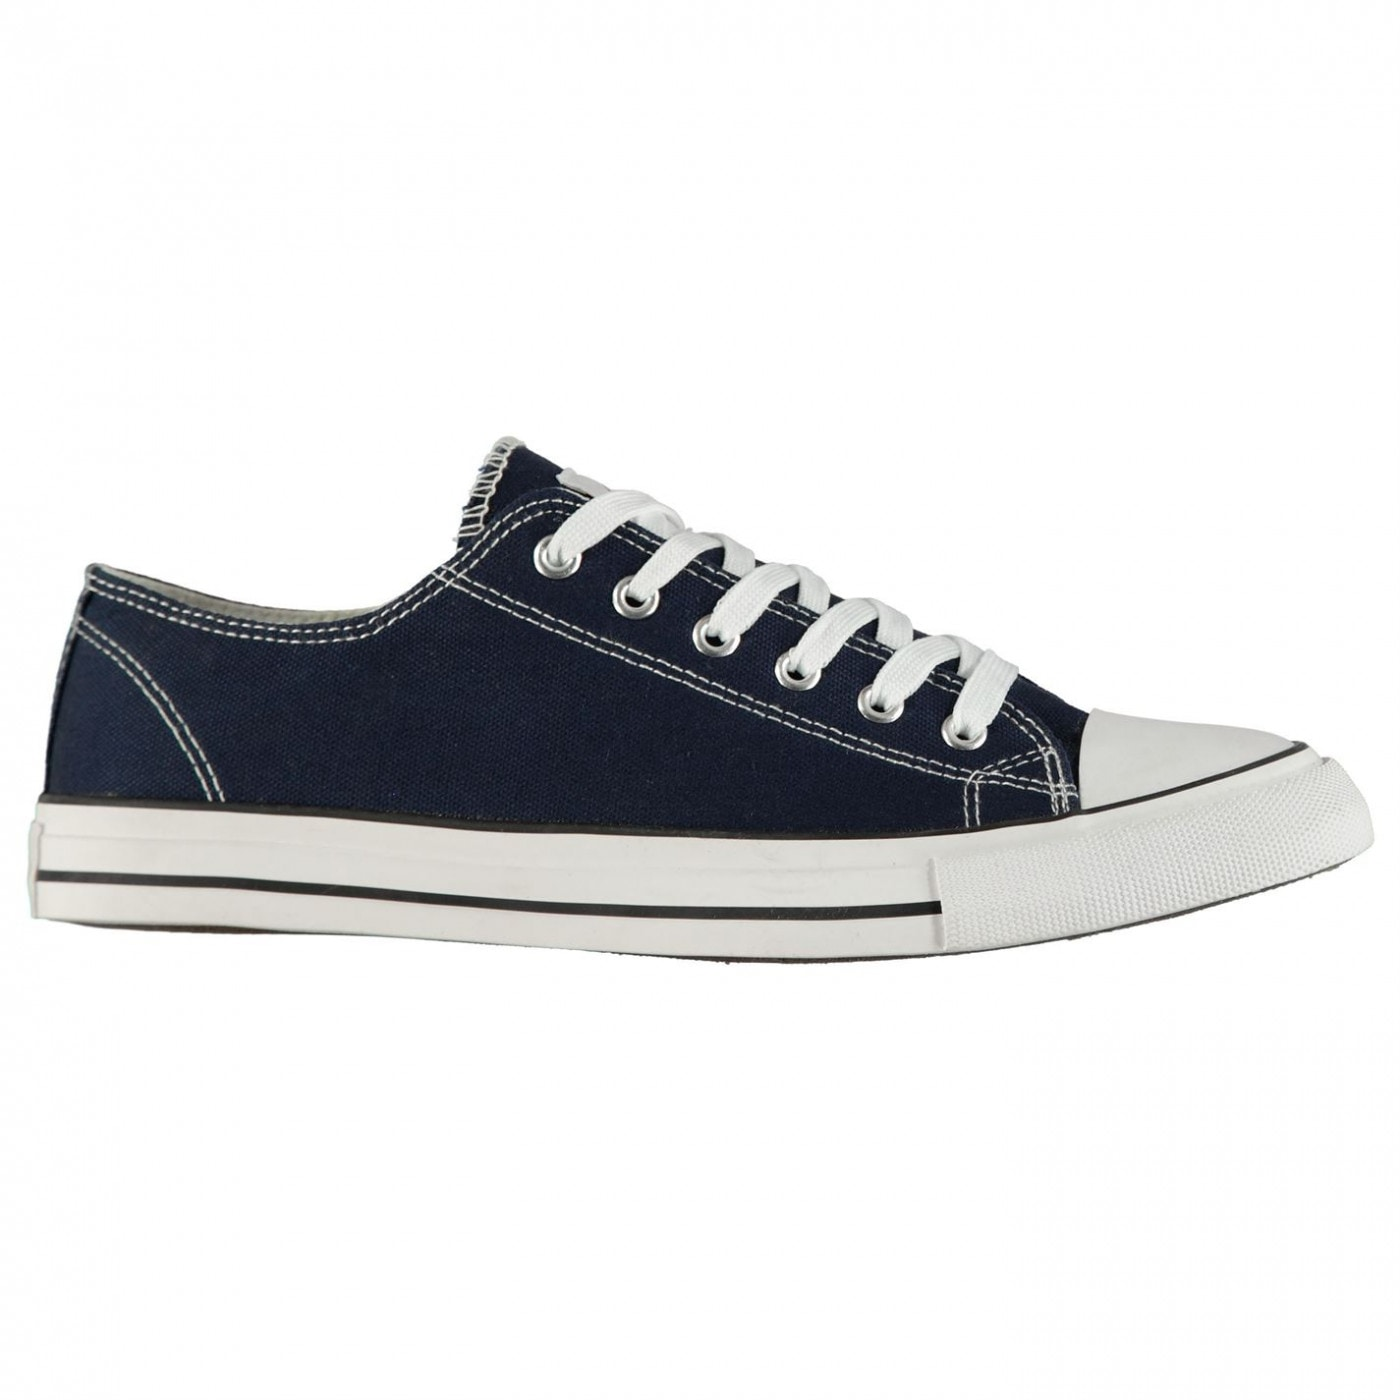 Lee Cooper Canvas Lo Shoes Mens